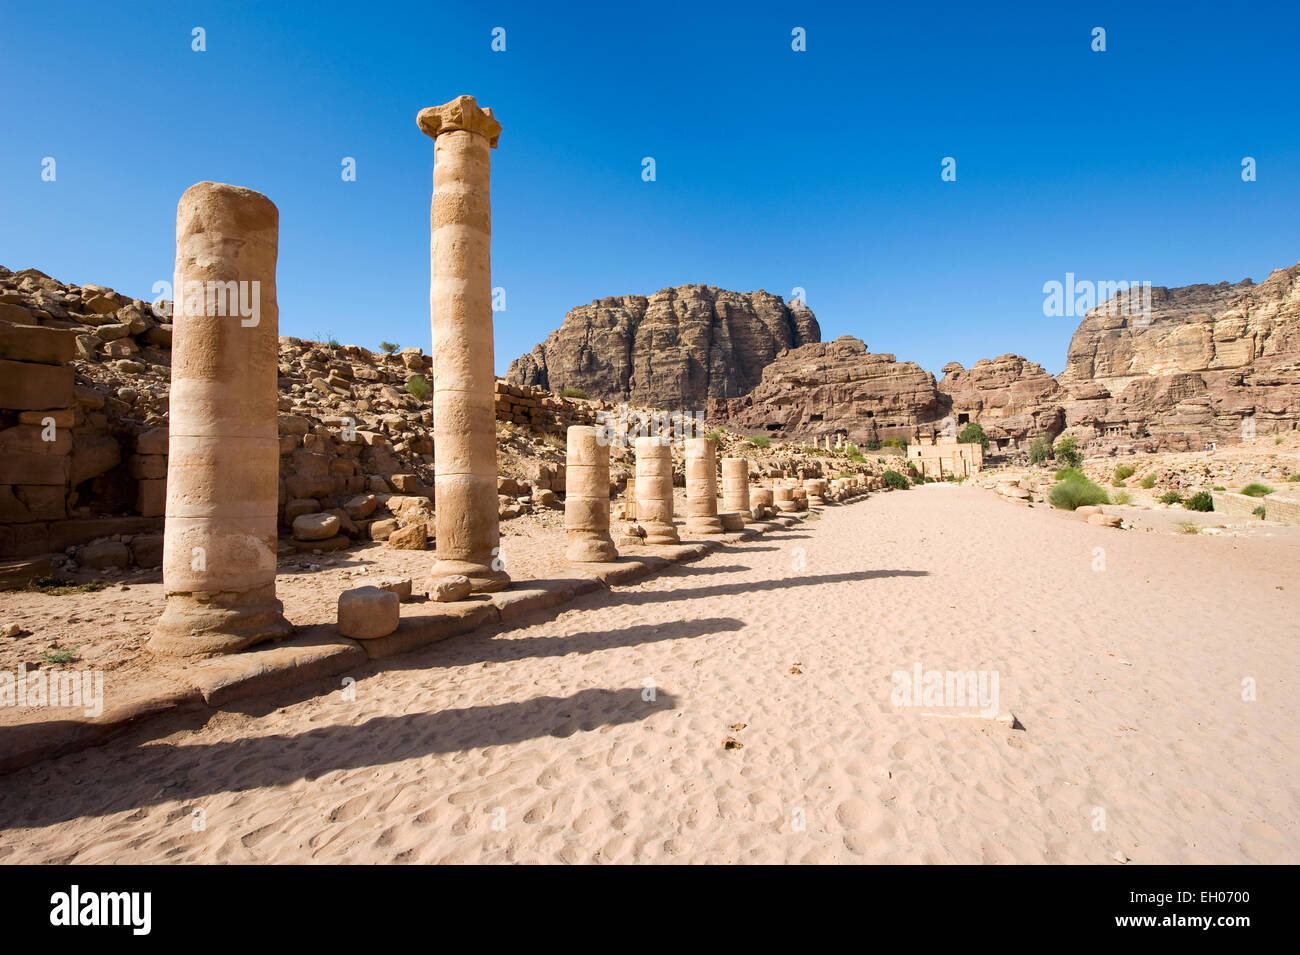 Roman pillars in the colonnaded street in Petra in Jordan - Stock Image